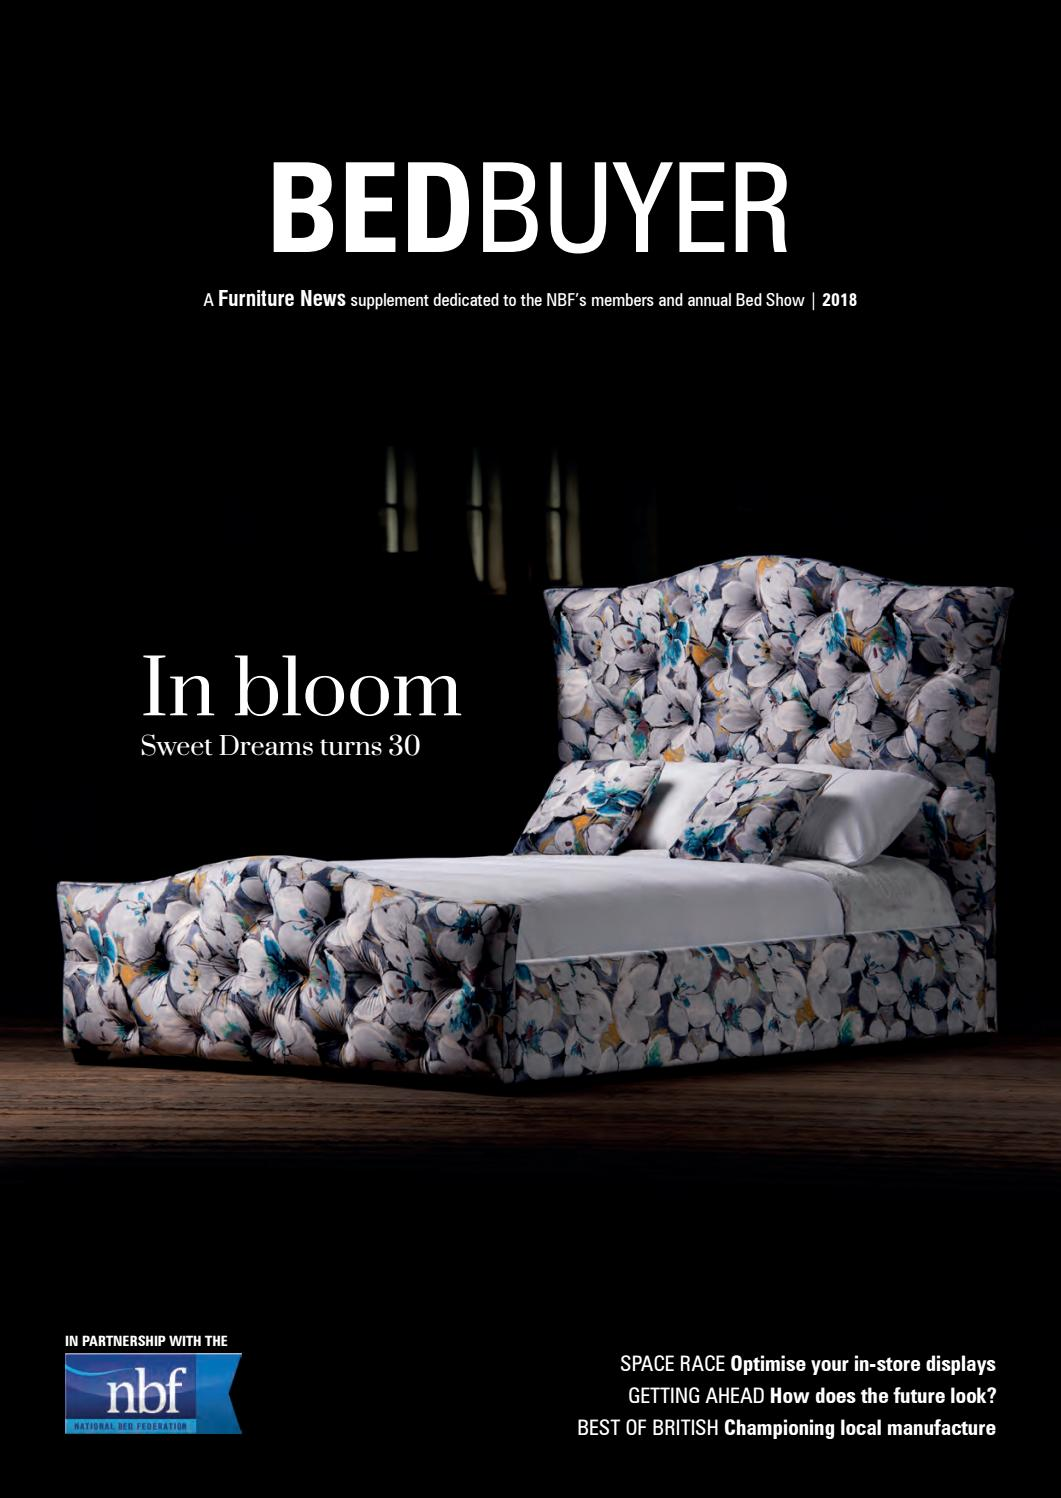 Sofa And Stuff Woodchester Bedbuyer 2018 By Gearing Media Group Ltd Issuu